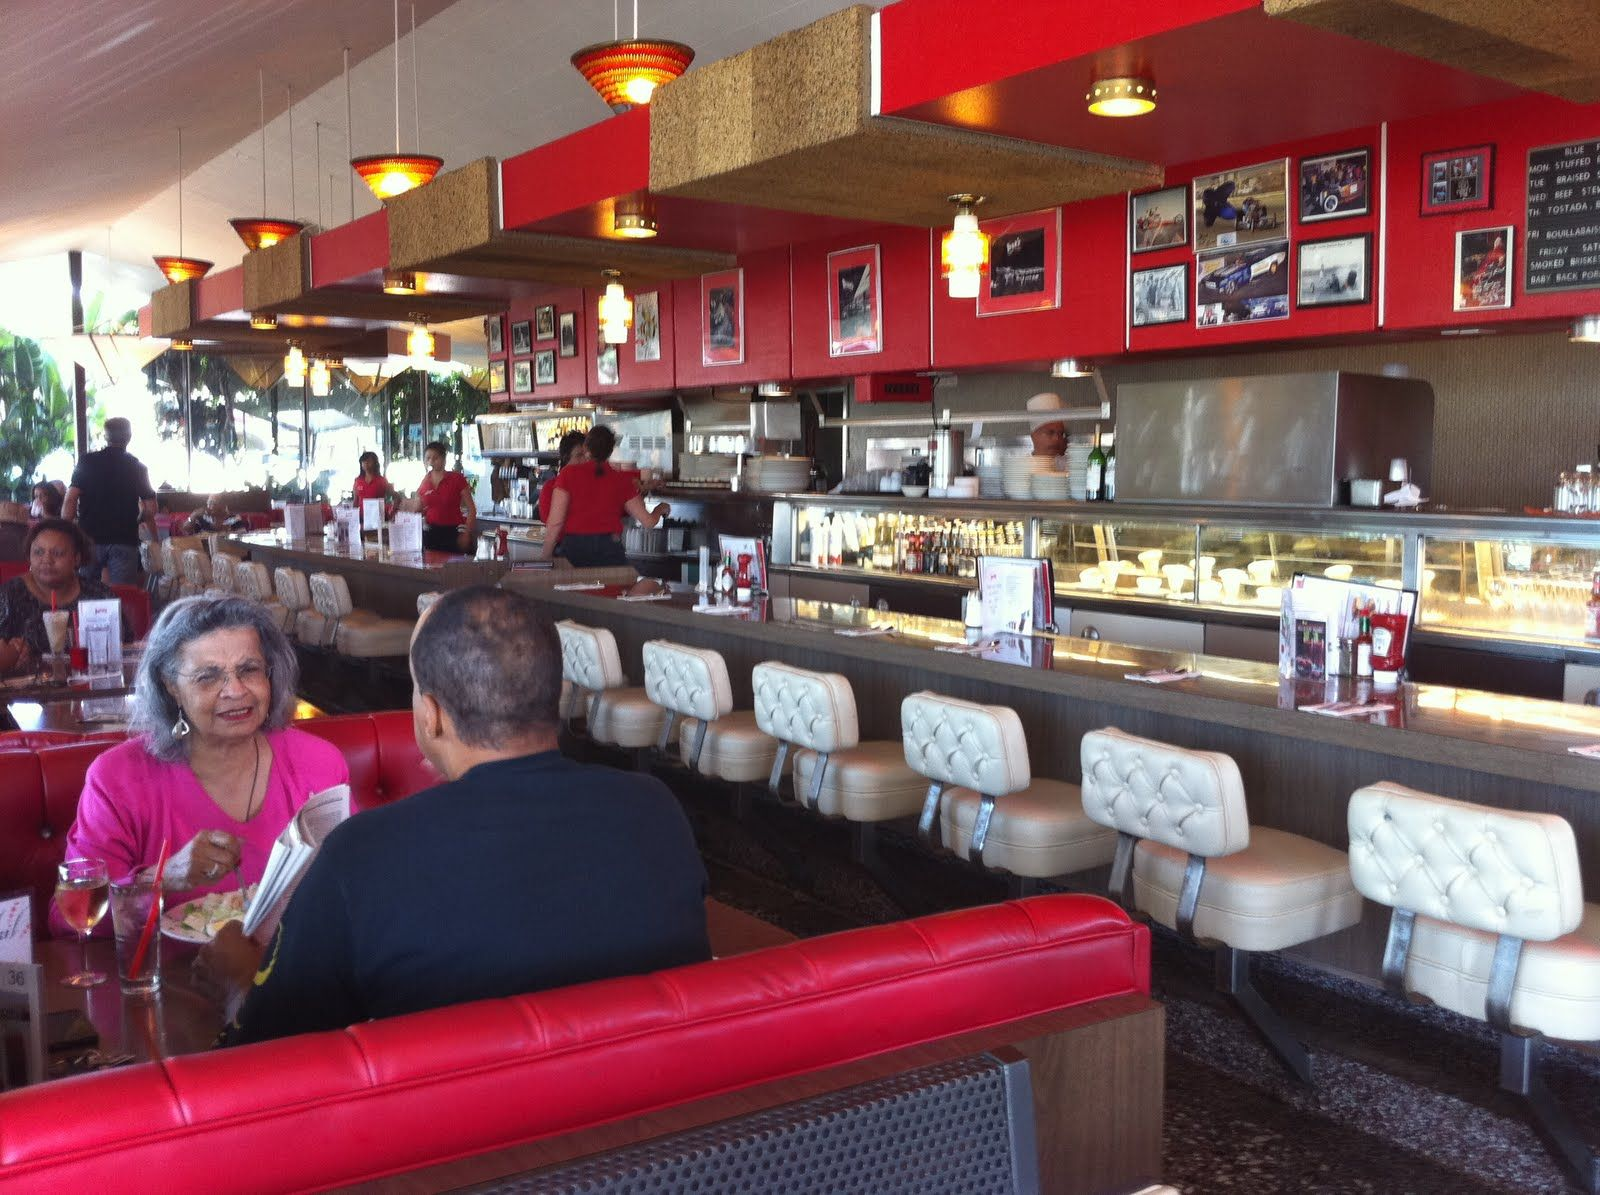 Pann S Restaurant Coffee Shop One Step Into The Diner And It S Apparent Why It S Been Recognized By The Prestigious Los An Coffee Shop Bakery Decor Diner